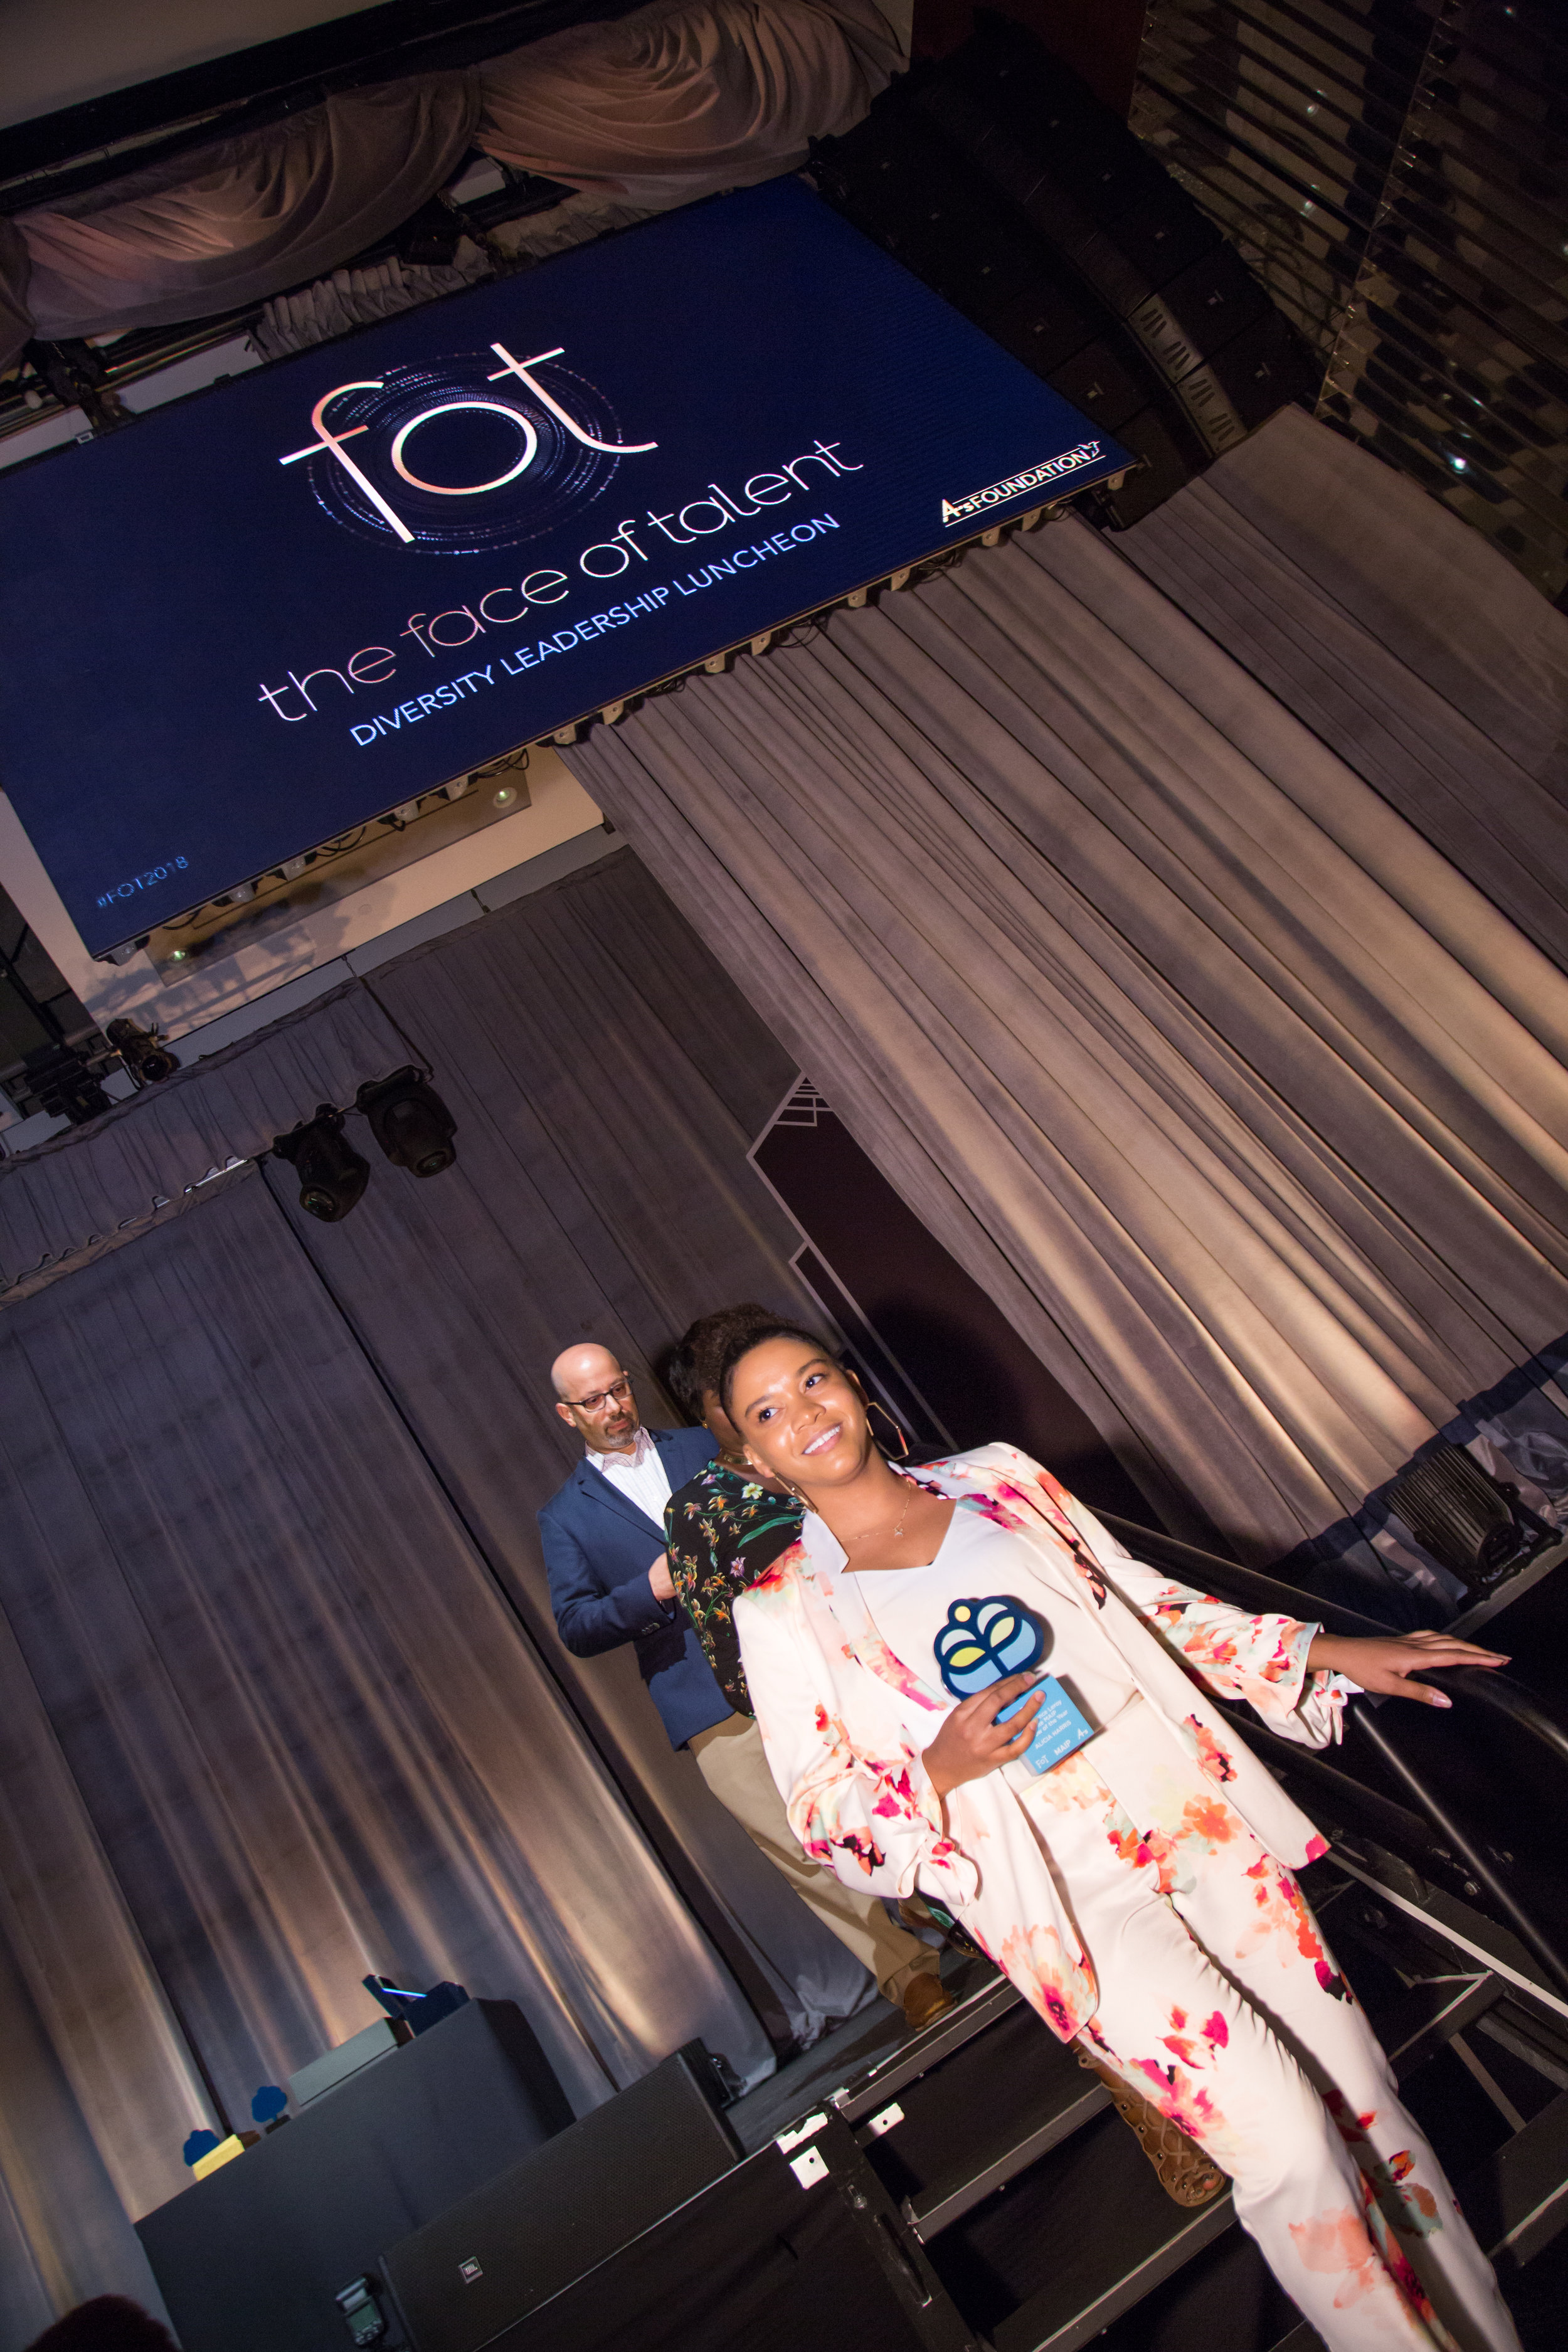 4As_MAIP_FOT_Luncheon_2018_Margarita_Corporan-158.jpg